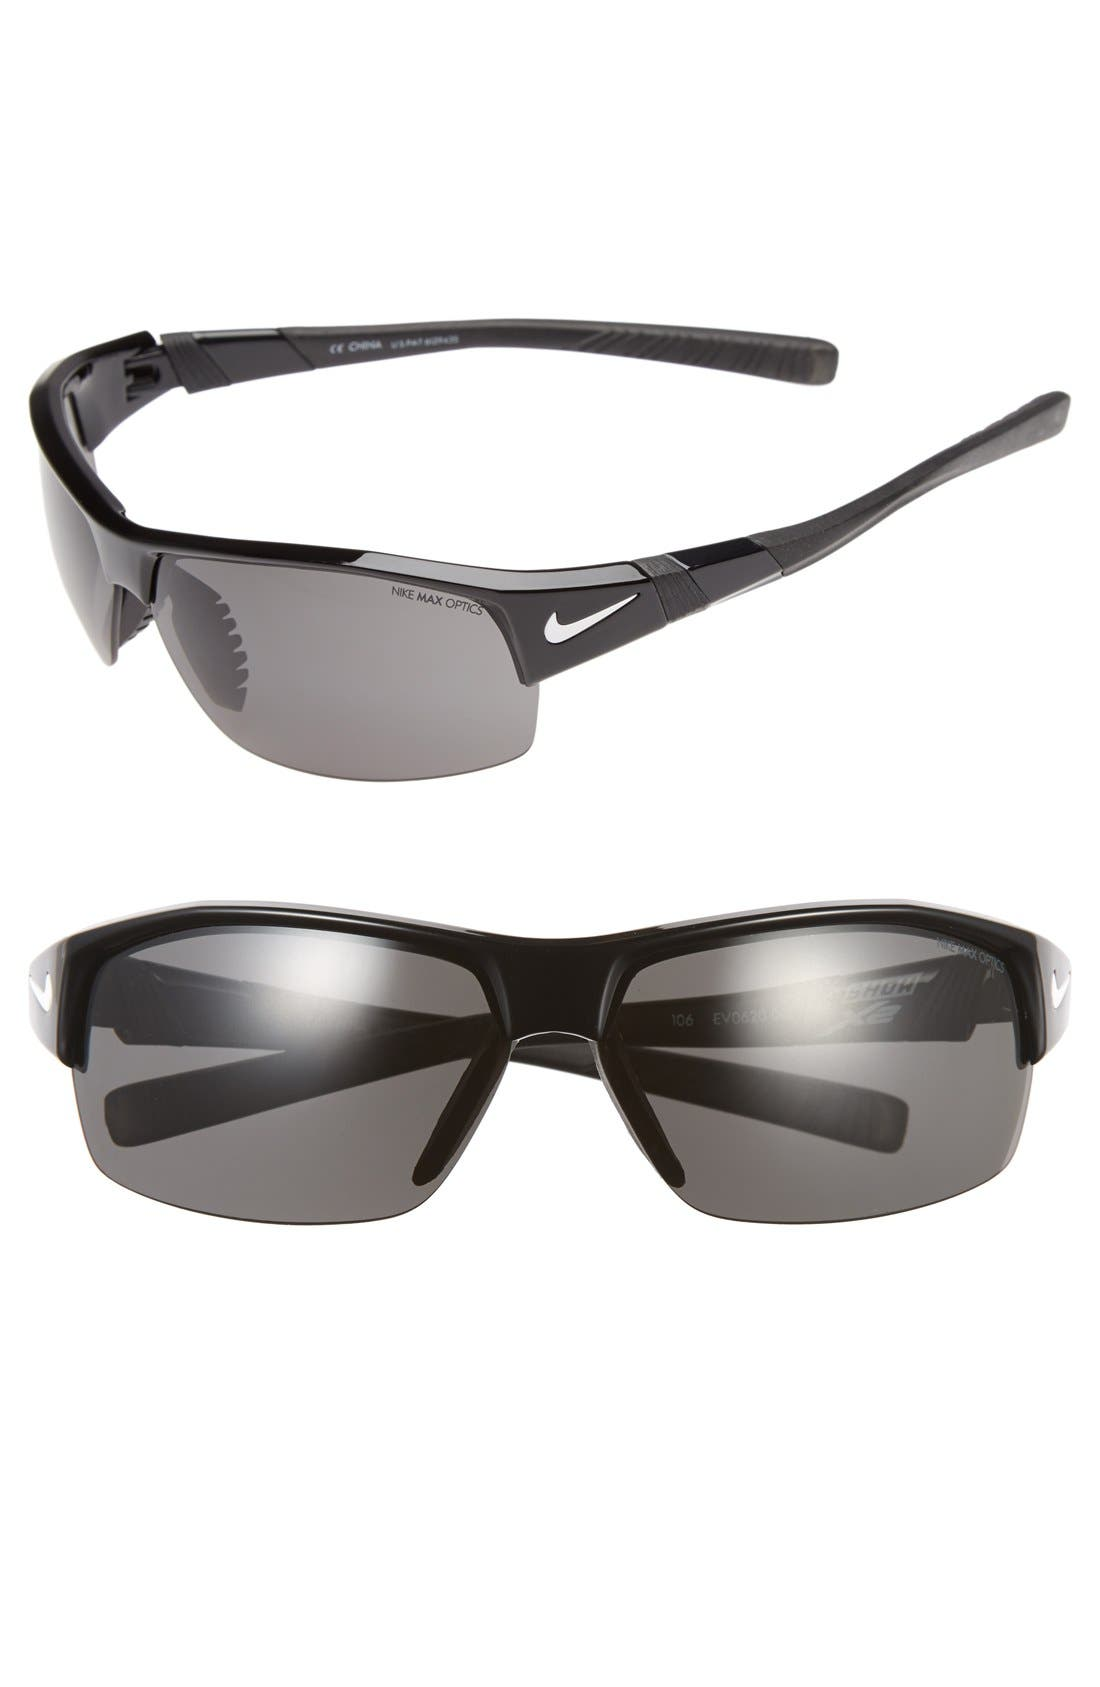 Alternate Image 1 Selected - Nike 69mm 'Show X2' Semi Rimless Sunglasses